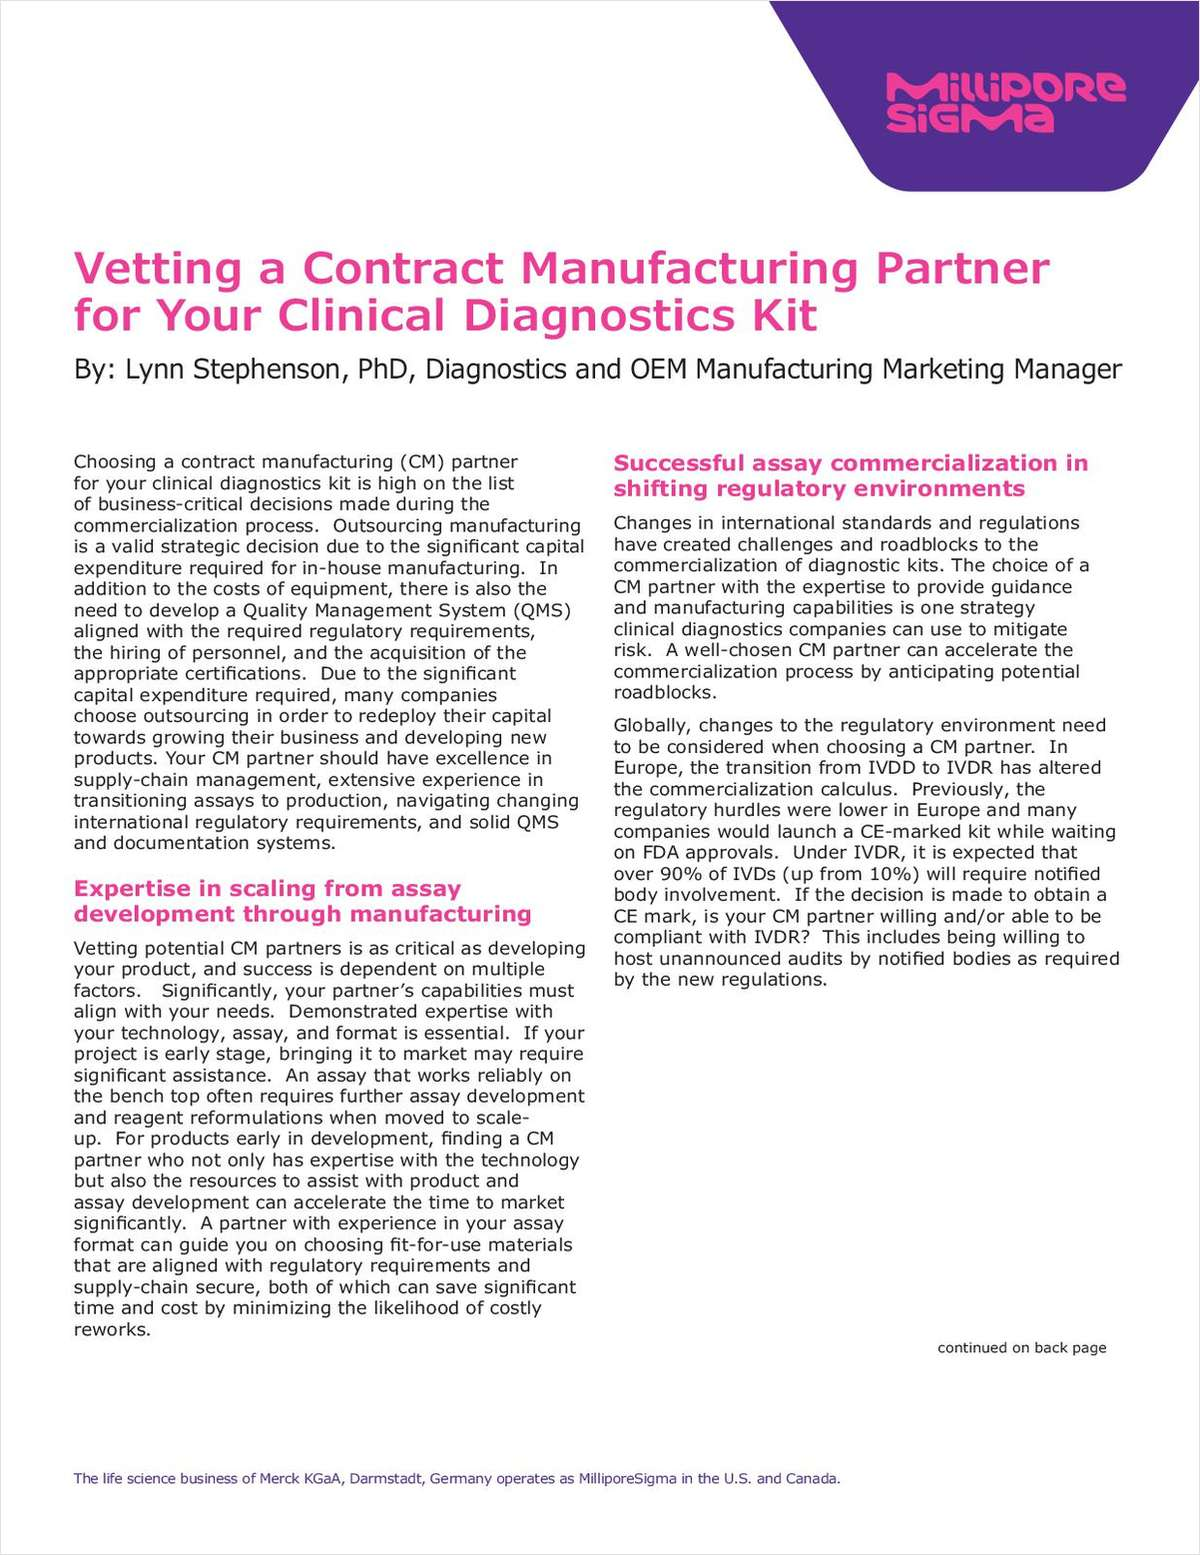 Vetting a Contract Manufacturing Partner for Your Clinical Diagnostics Kit